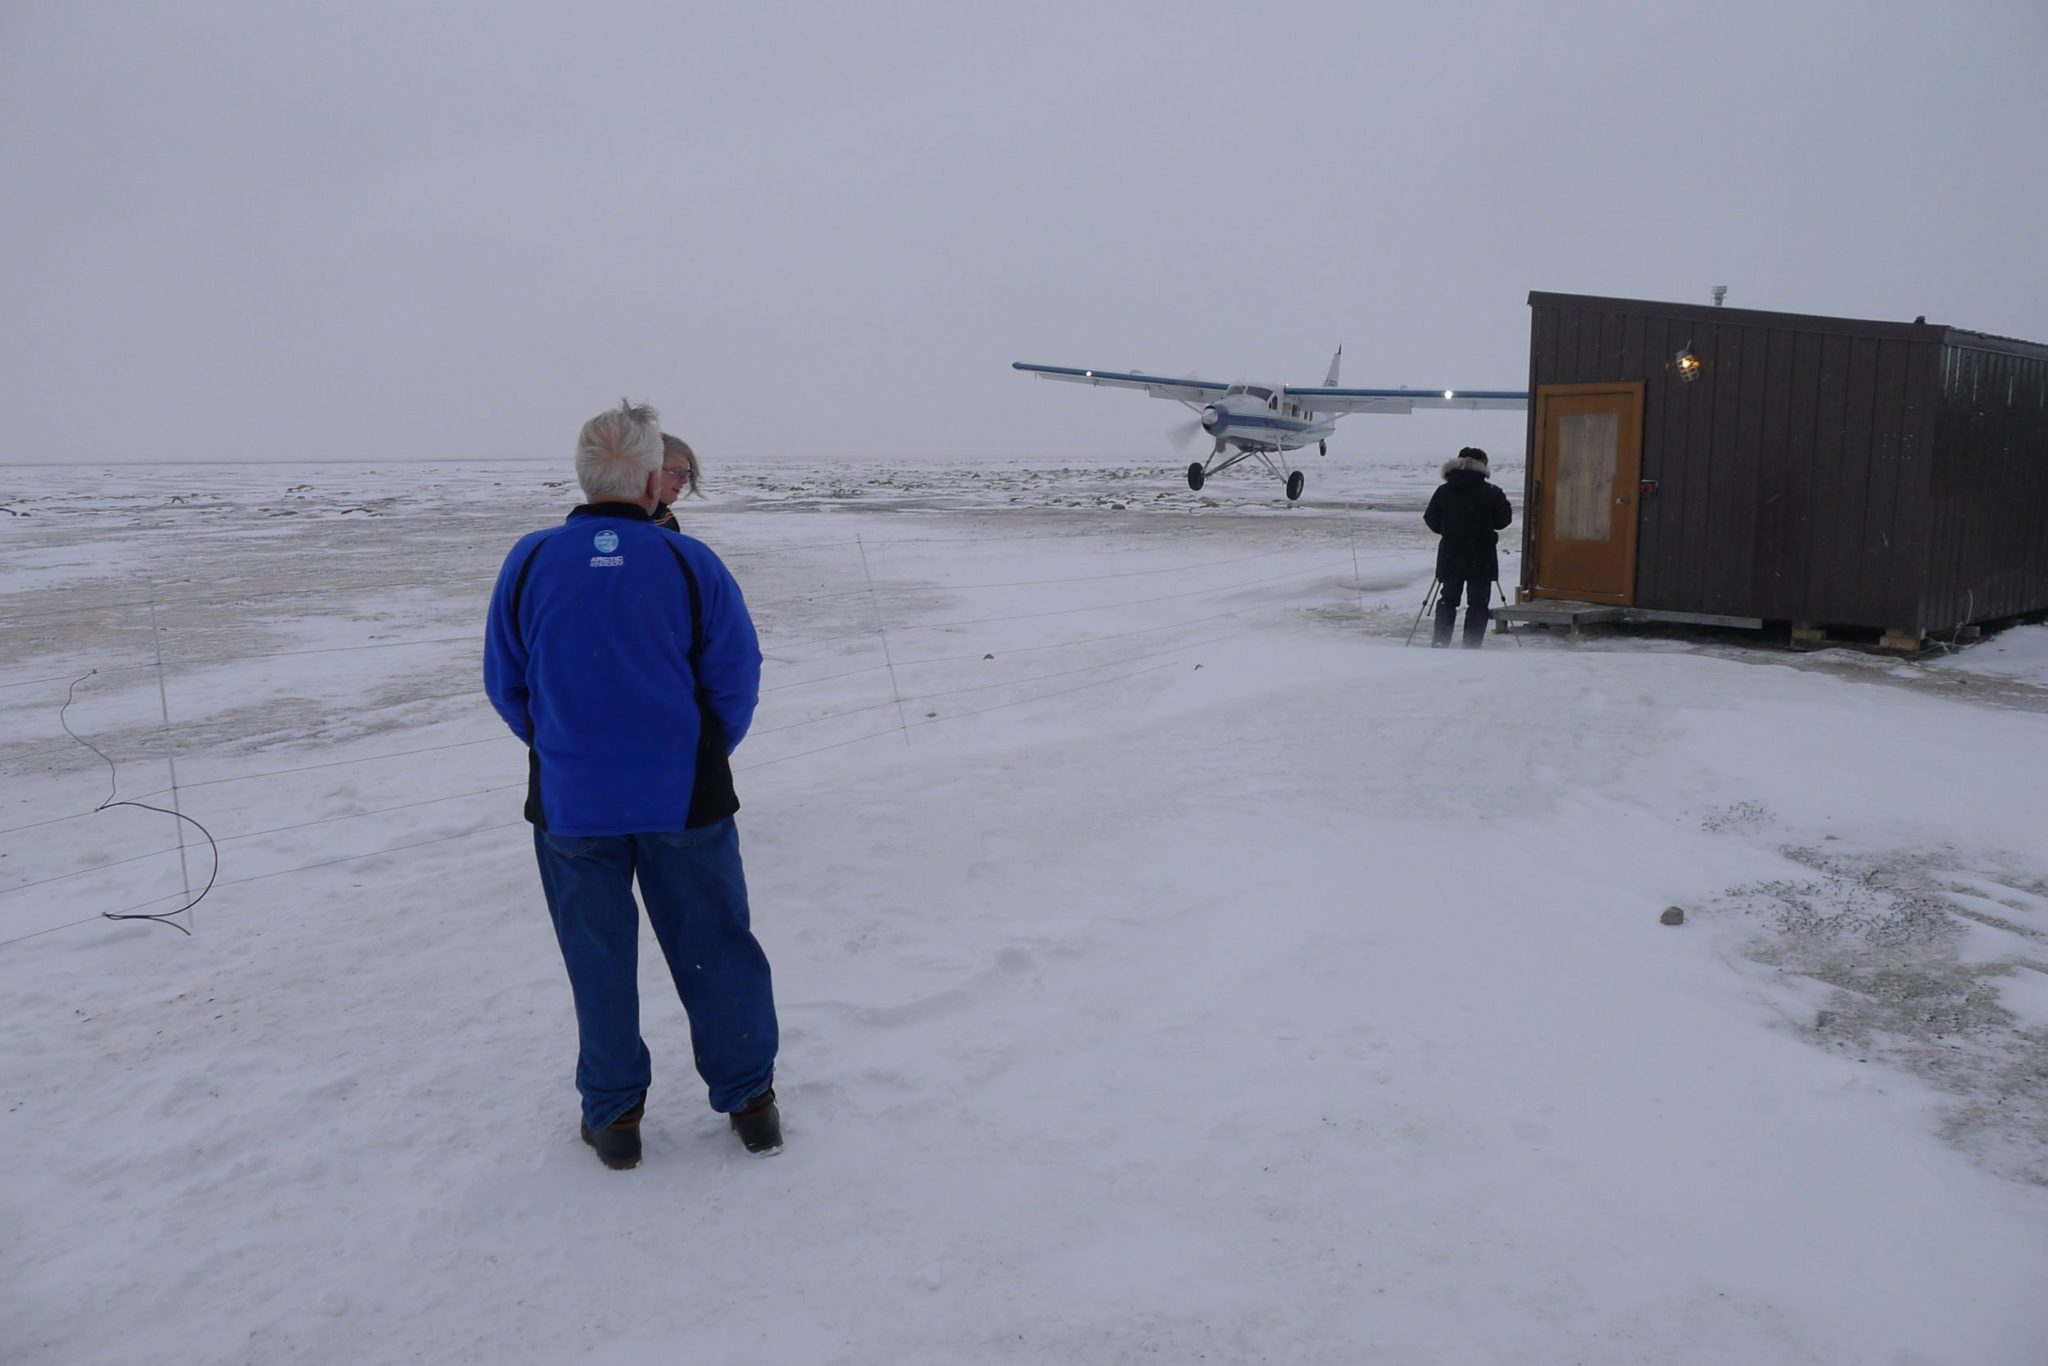 Plane lands at bear cabins